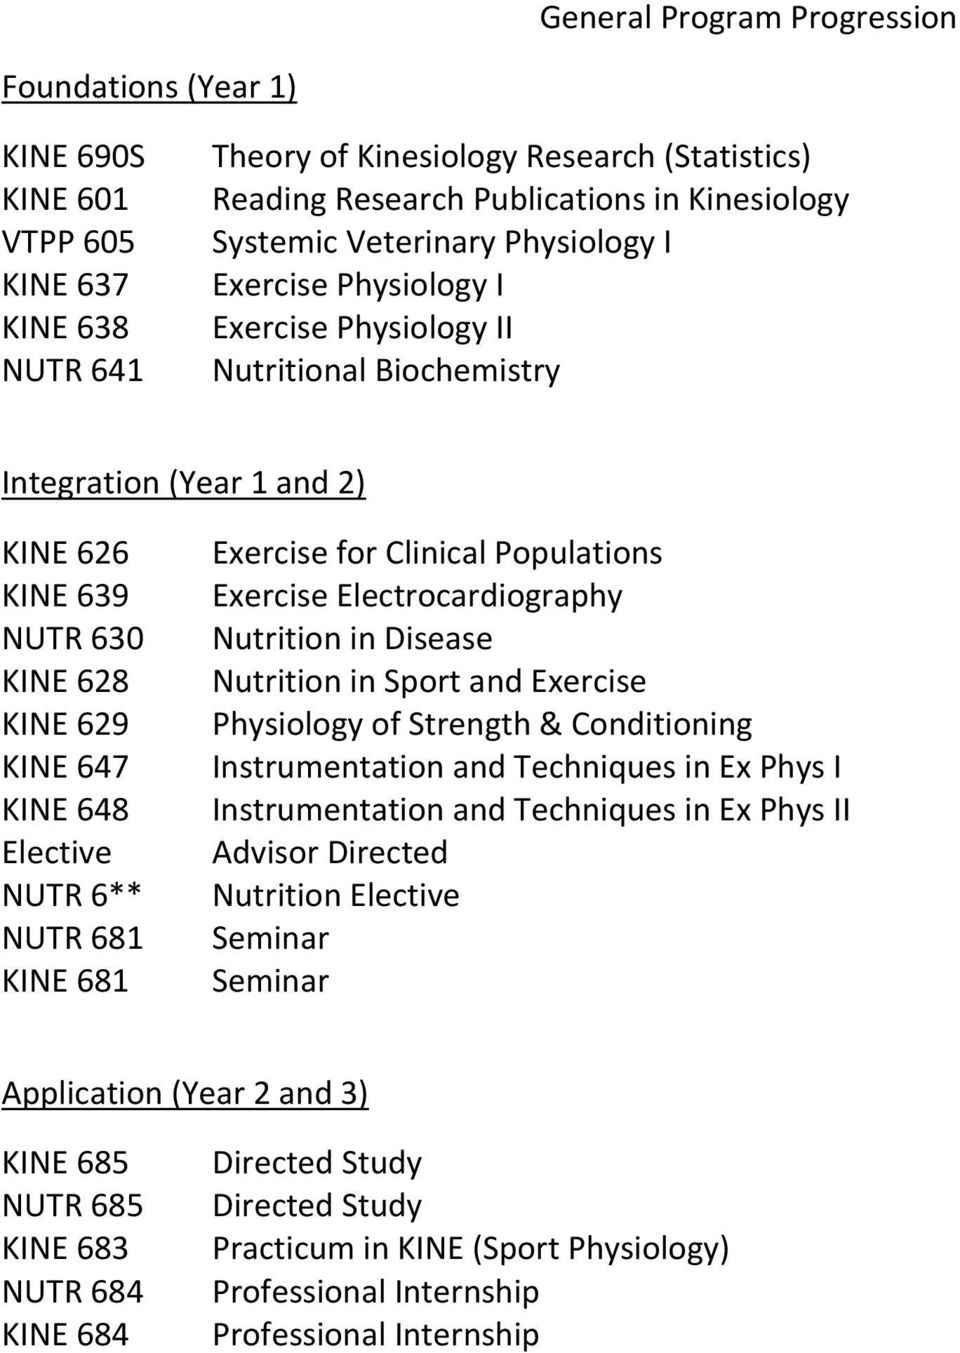 Elective NUTR 6** NUTR 681 KINE 681 Exercise for Clinical Populations Exercise Electrocardiography Nutrition in Disease Nutrition in Sport and Exercise Physiology of Strength & Conditioning